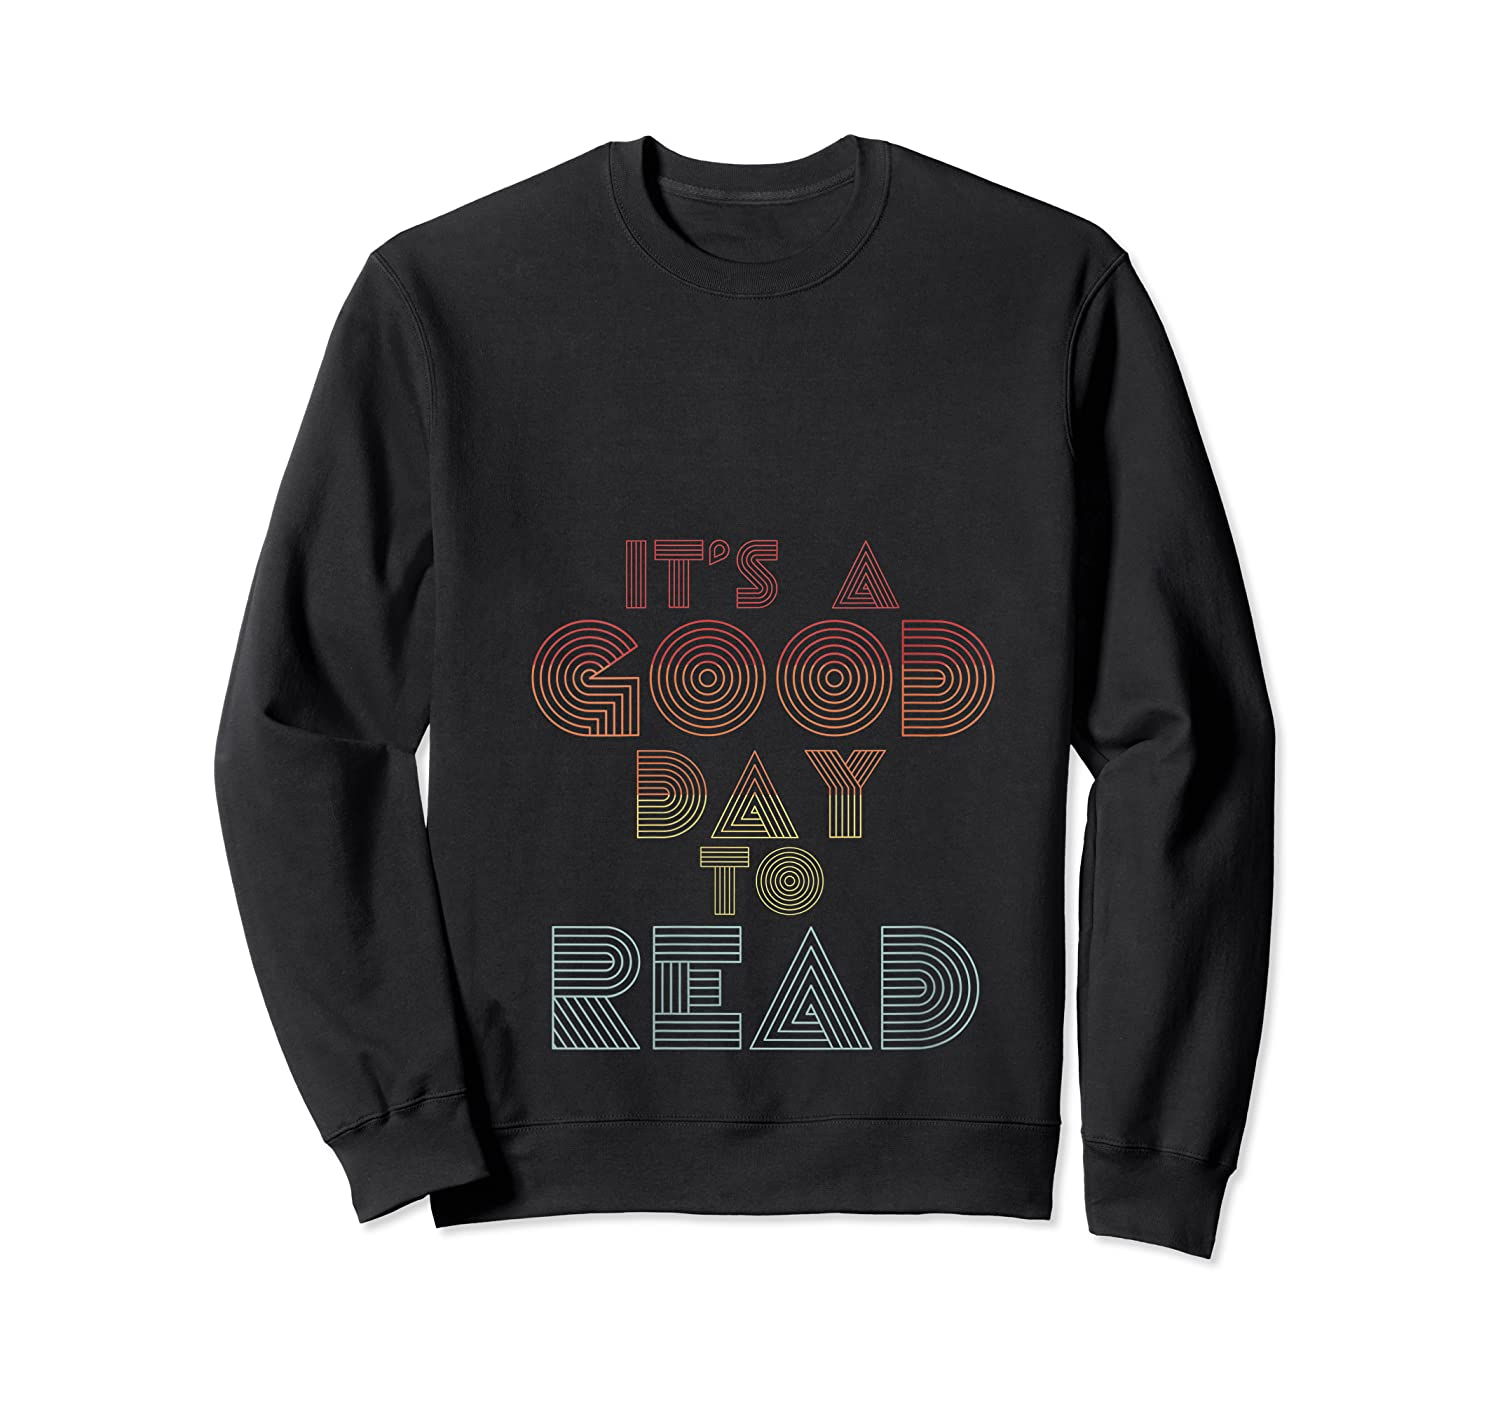 Retro Bookish Its A Good Day To Read Book Reader Book Nerd T Shirt Crewneck Sweater